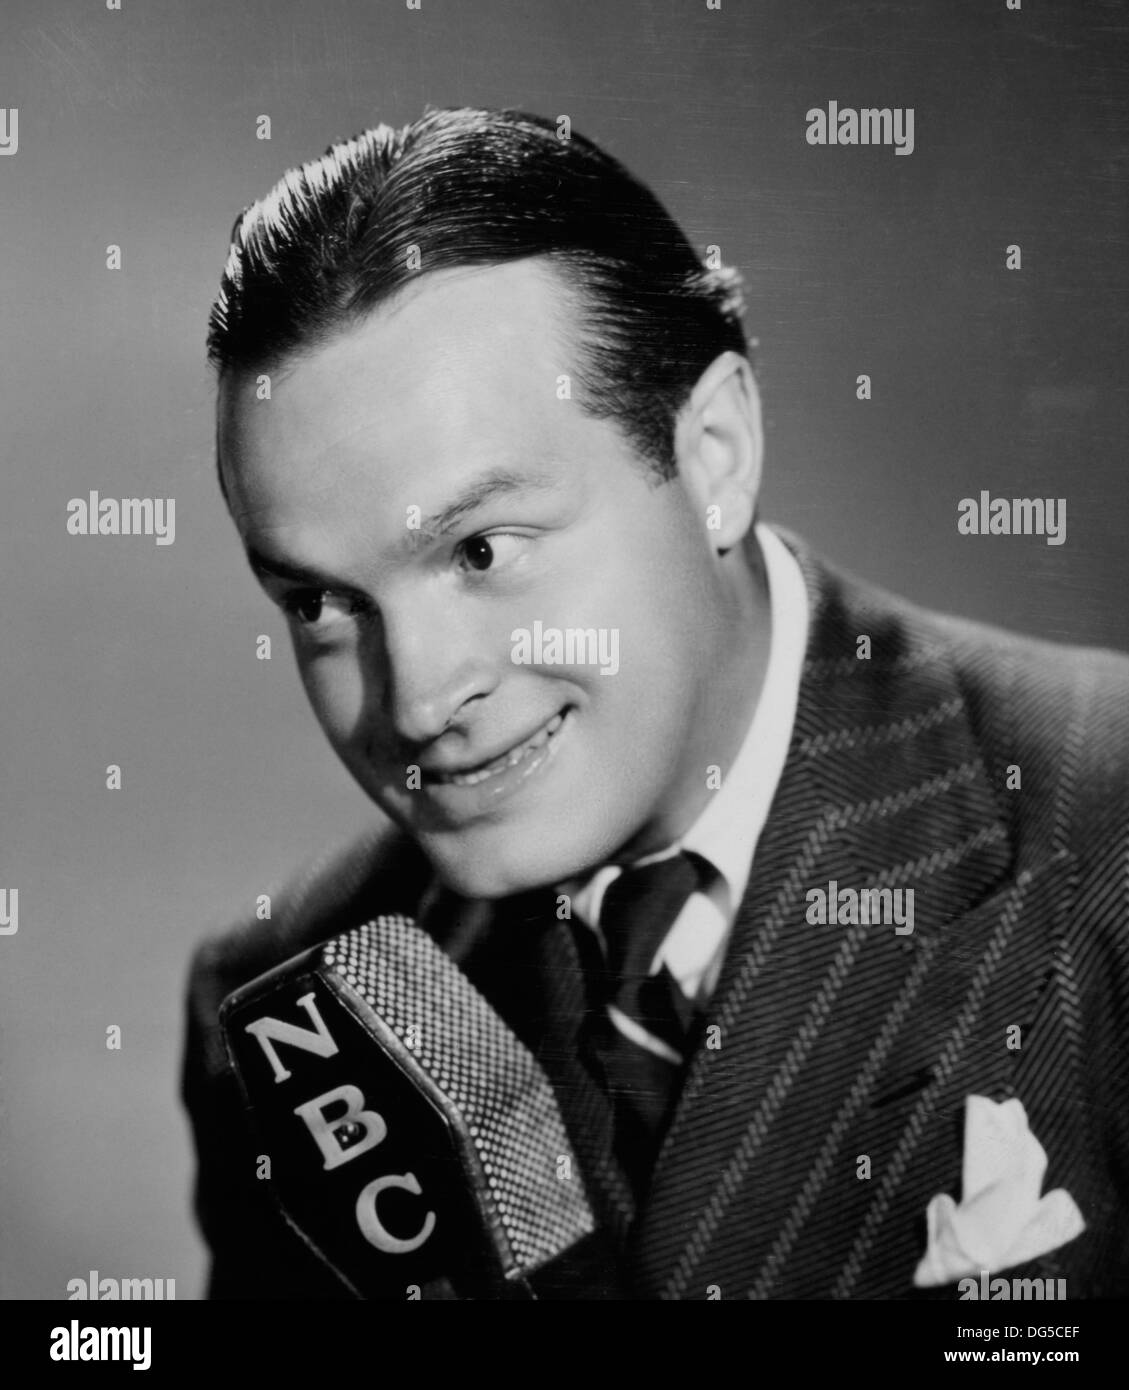 Bob Hope, Publicity Portrait for his Radio Program, 'The Pepsodent Show Starring Bob Hope', NBC, 1940 - Stock Image